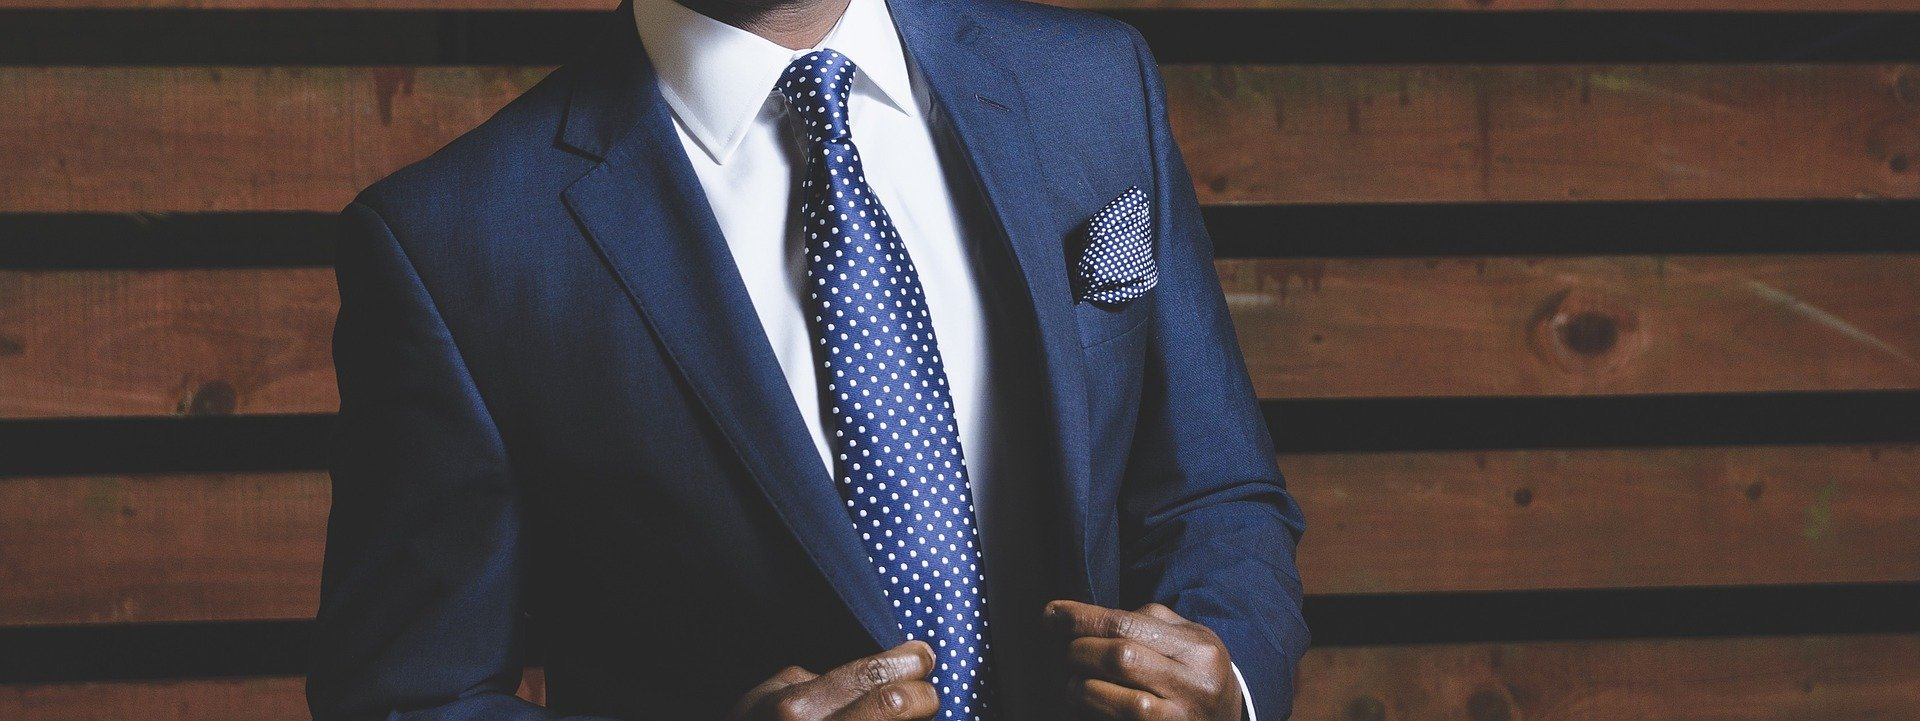 Riddles are fun. This one is about a suit. The picture is of a professional business suit.